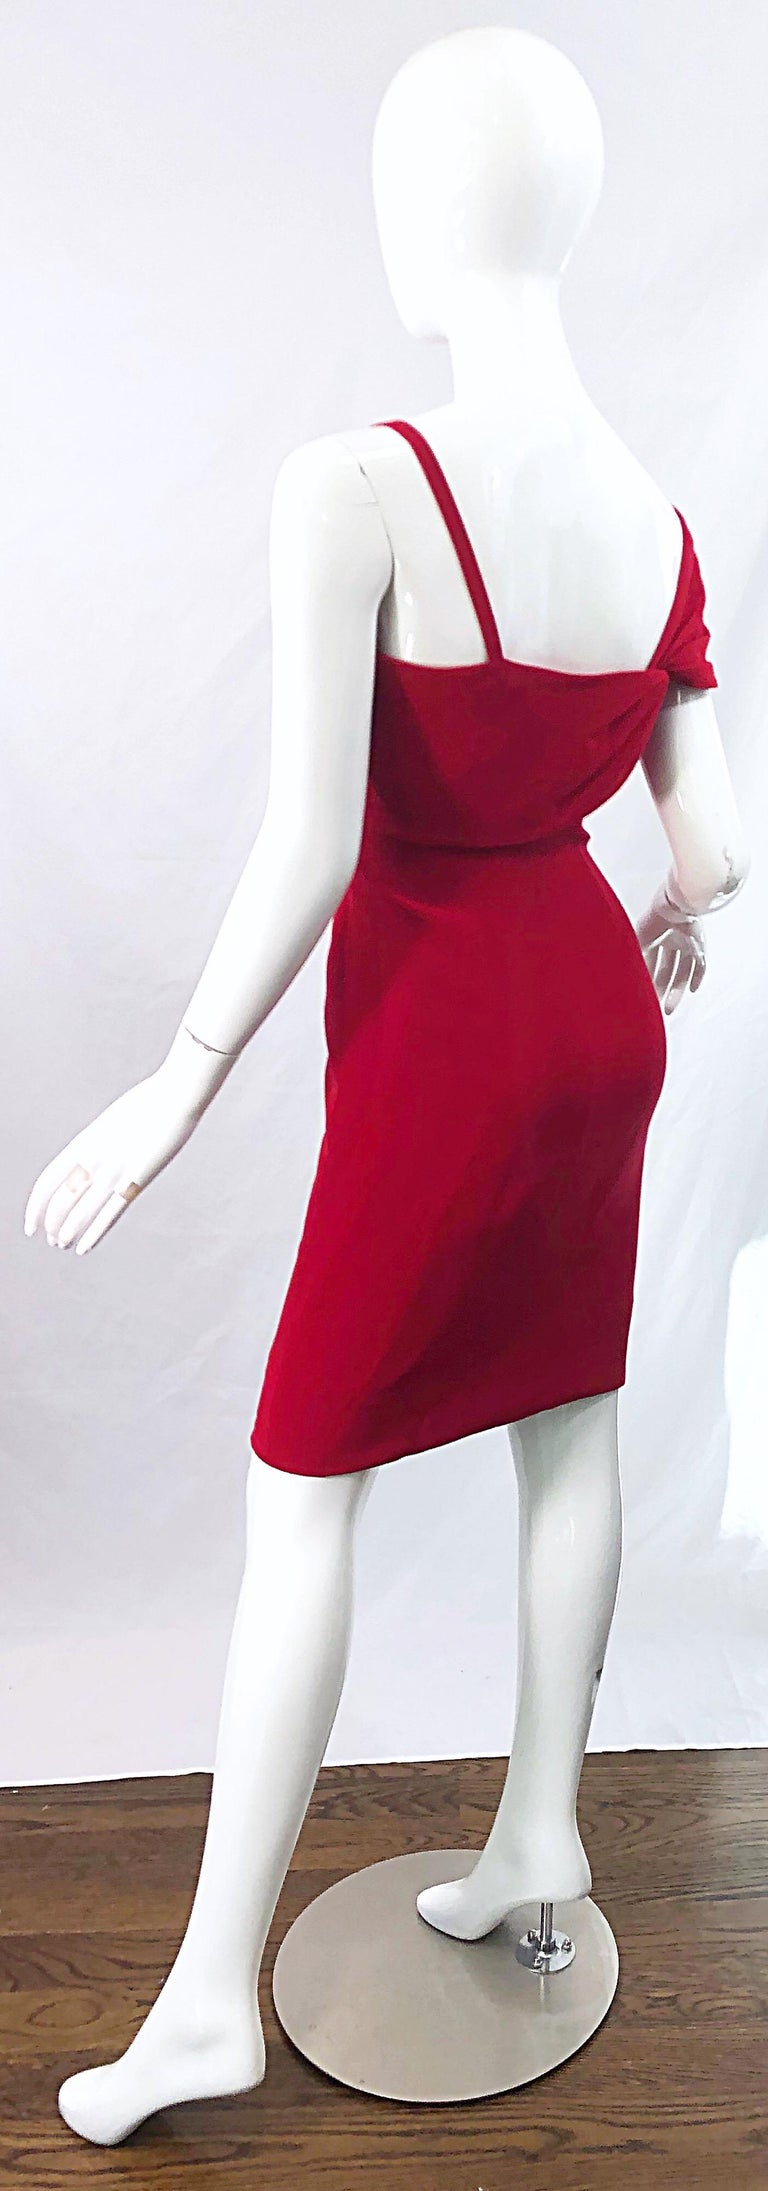 Vintage Bill Blass 1990s Size 6 Lipstick Red One Shoulder 90s Silk Dress For Sale 7